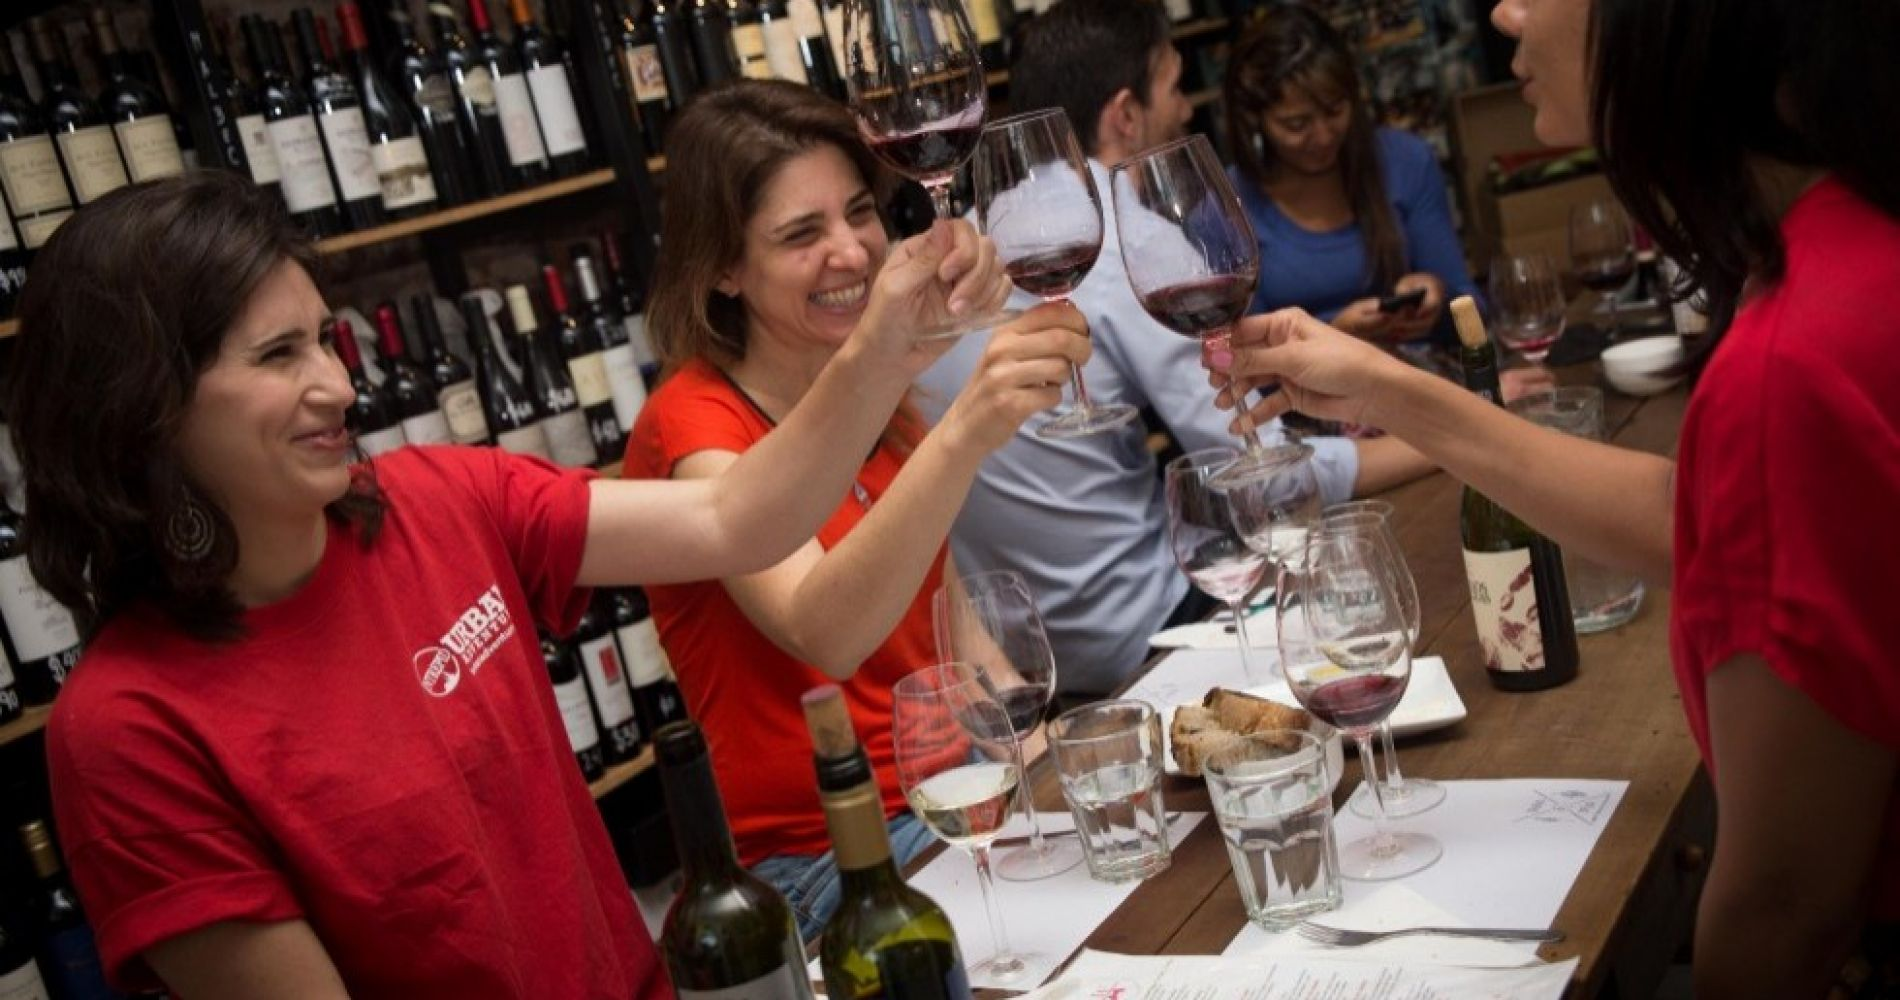 Malbec Wine Trail of Palermo in Buenos Aires